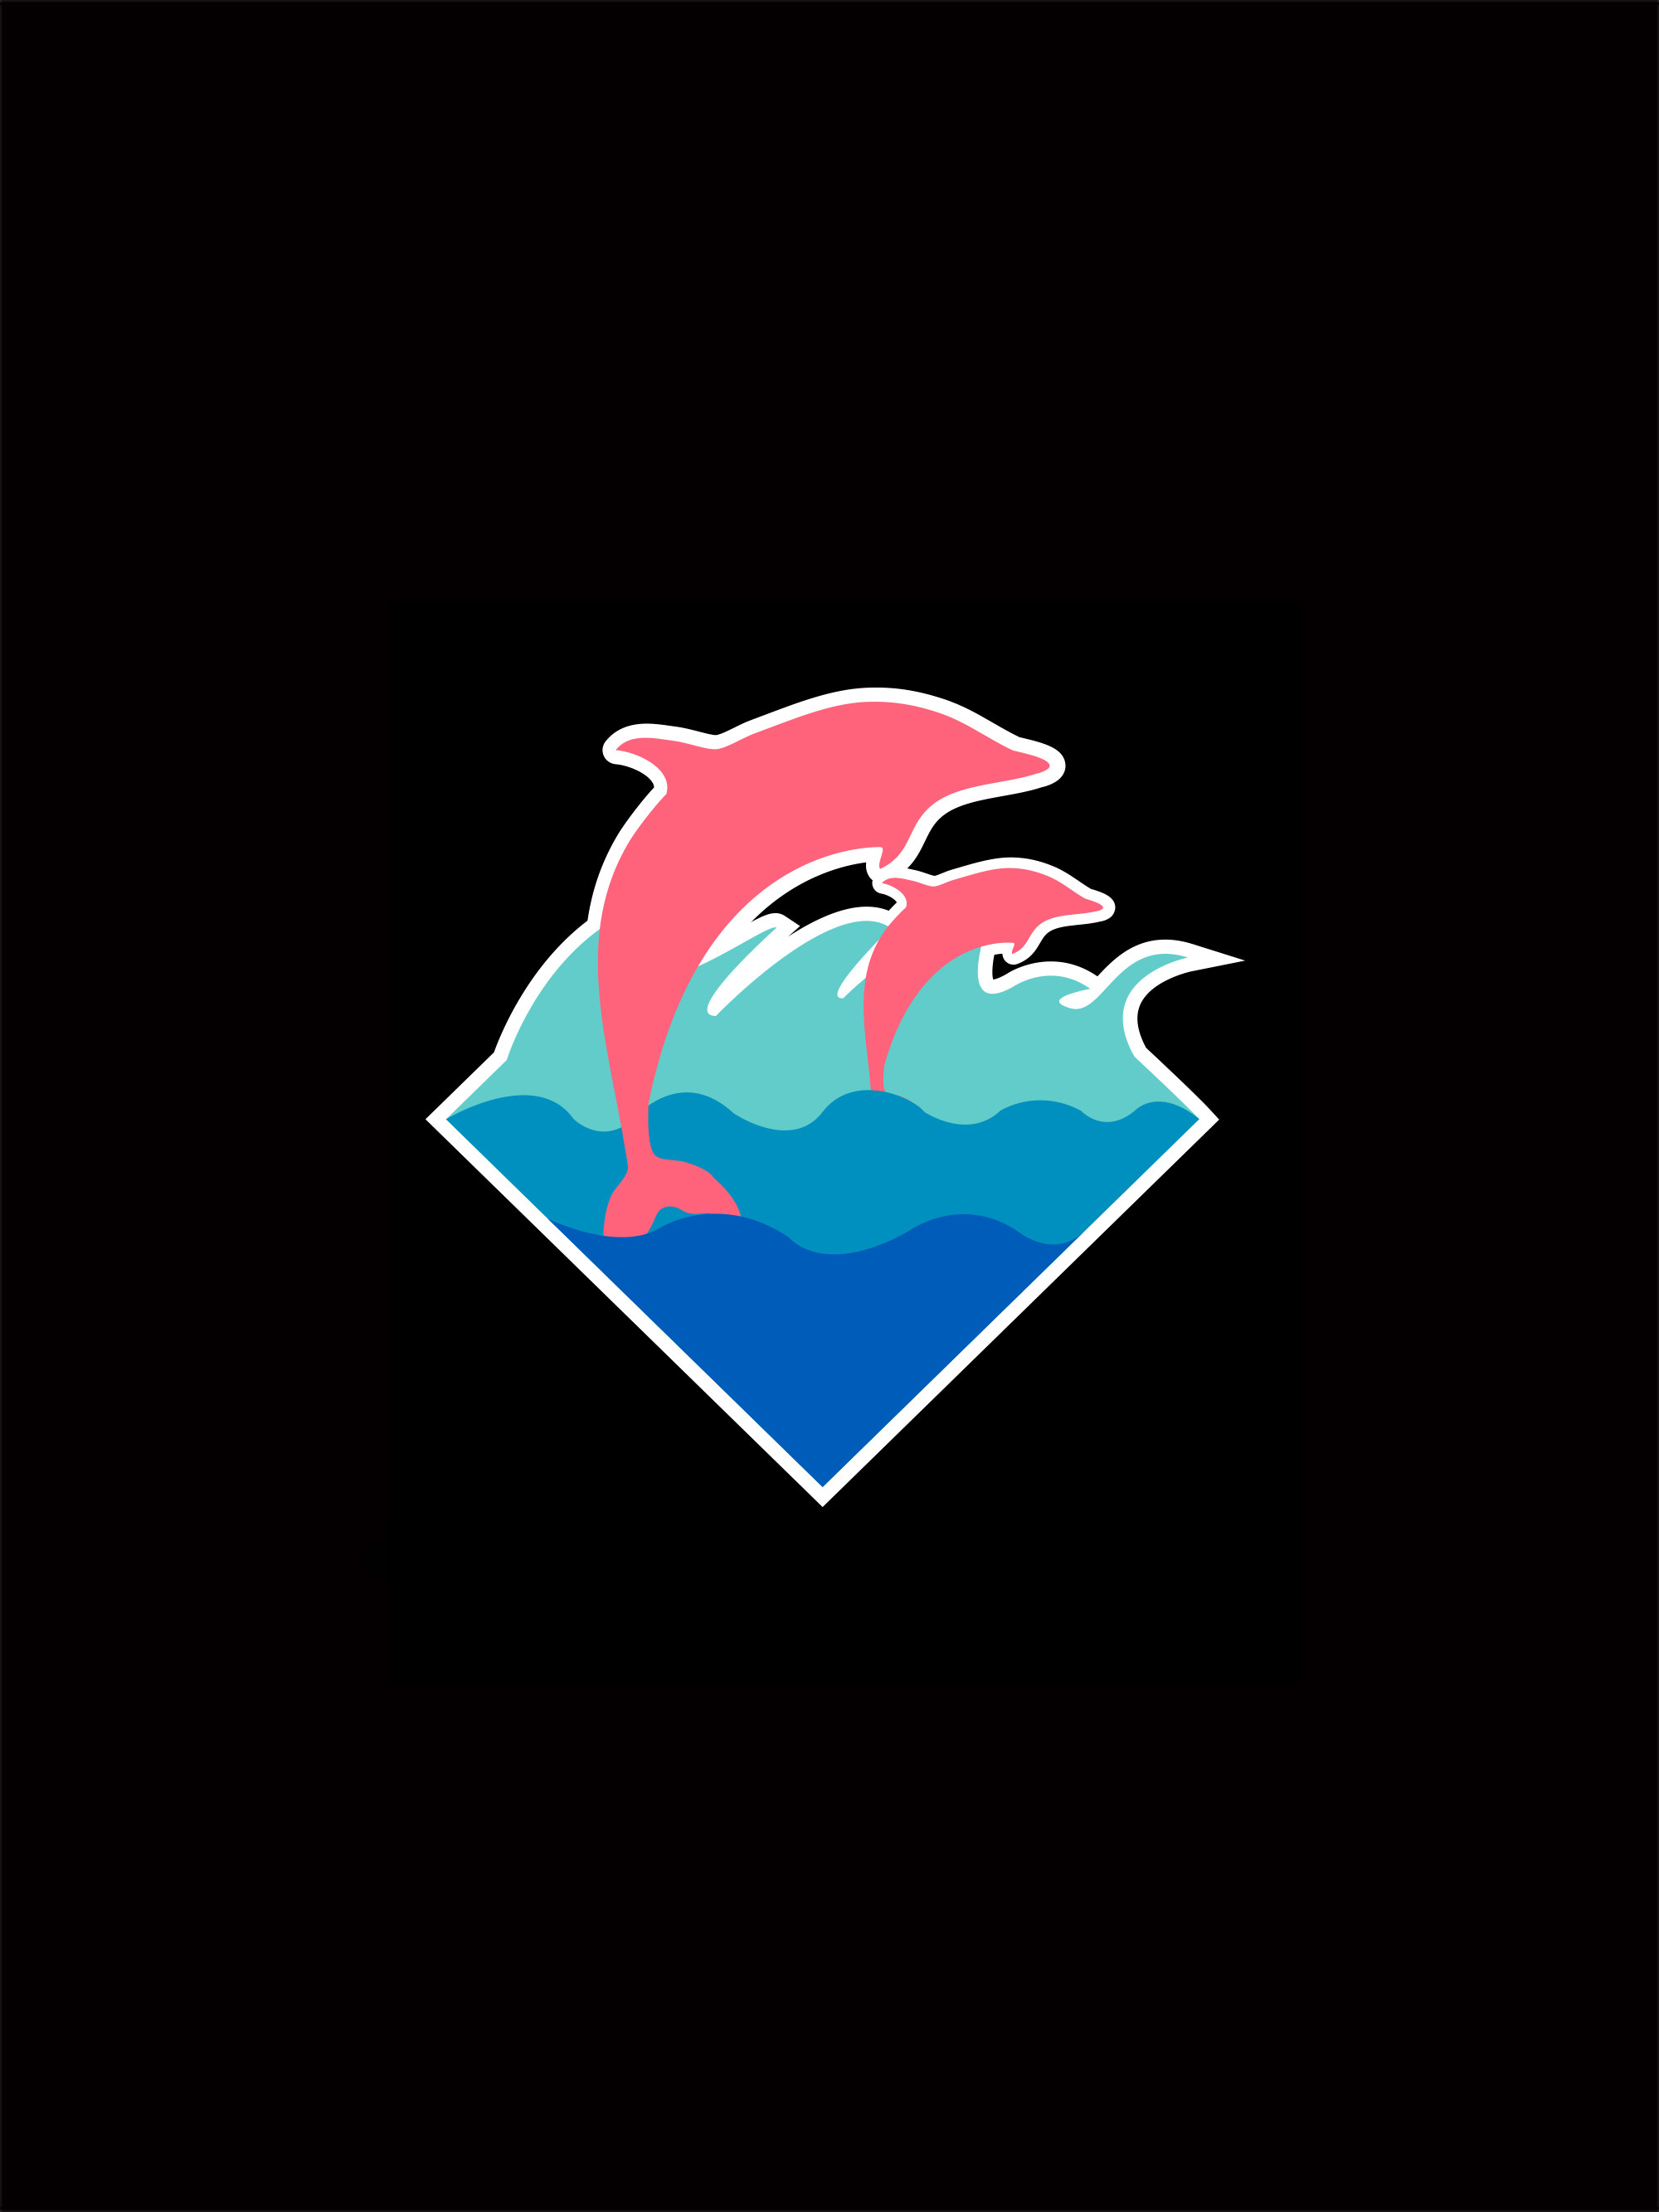 … pink dolphin wallpapers ozon4life …